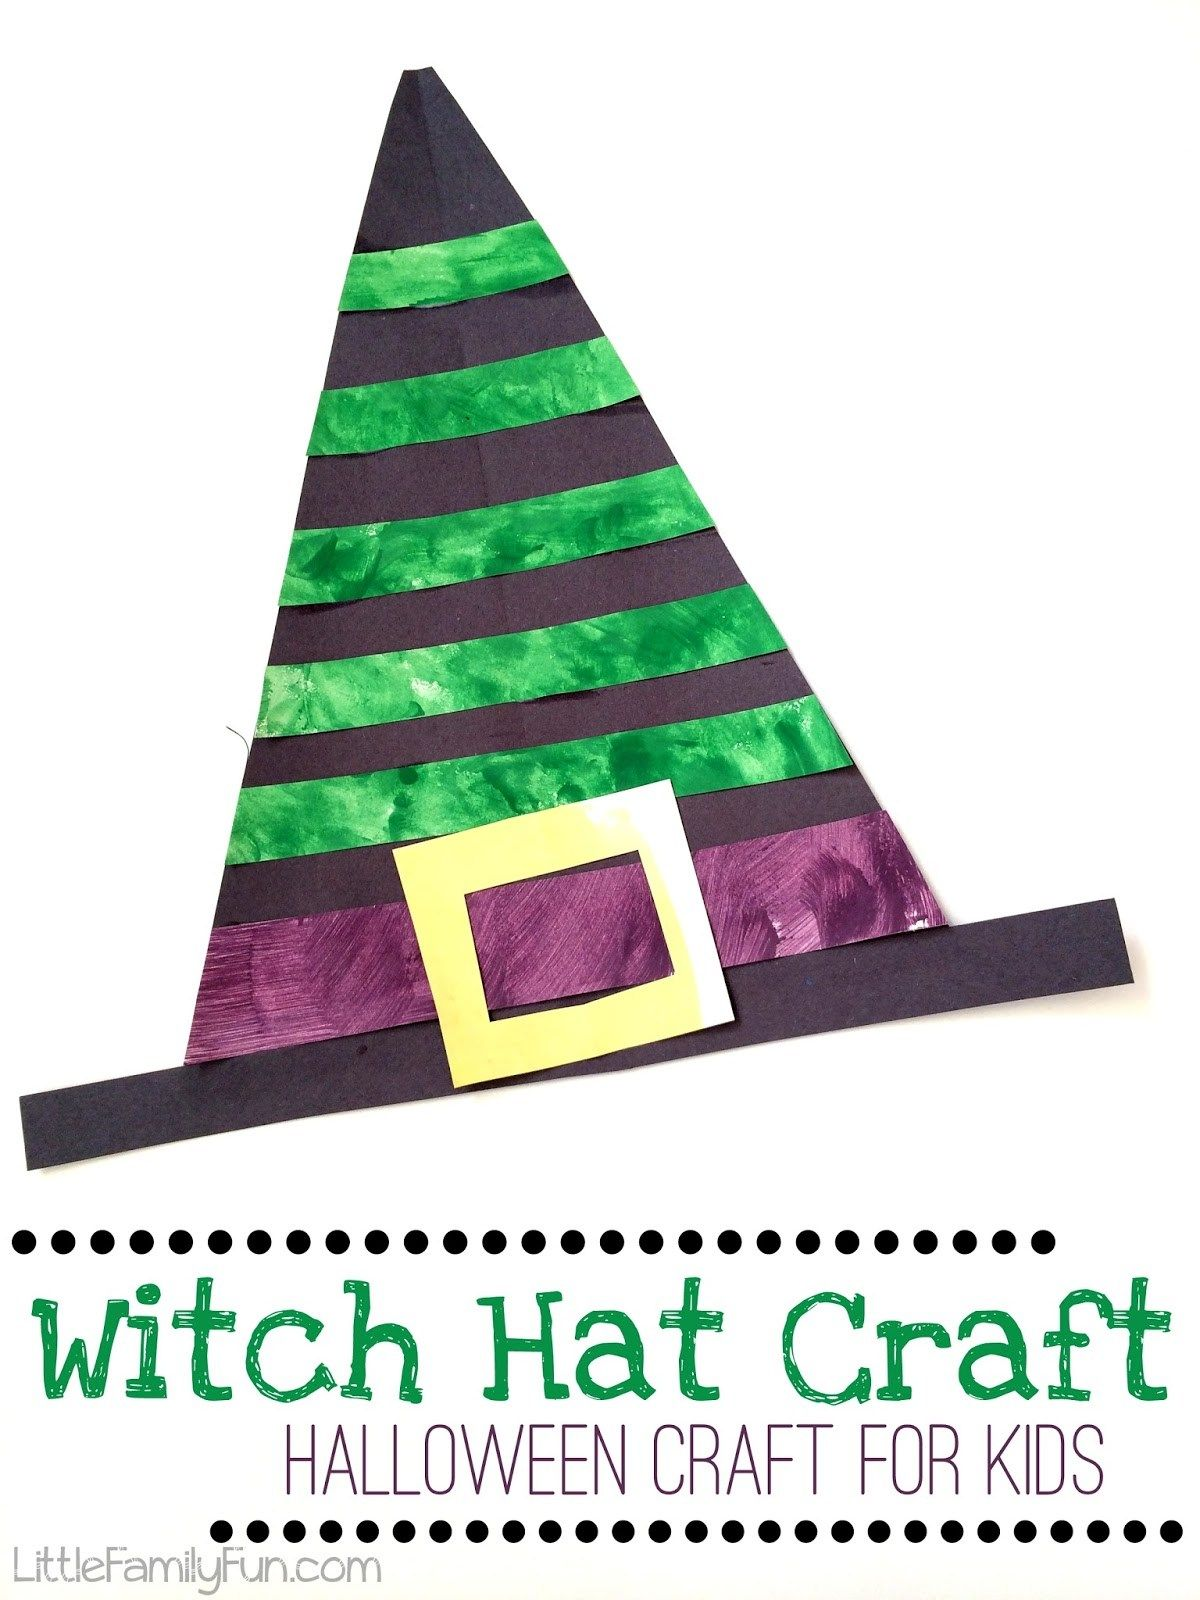 17+ Witch hat craft template ideas in 2021